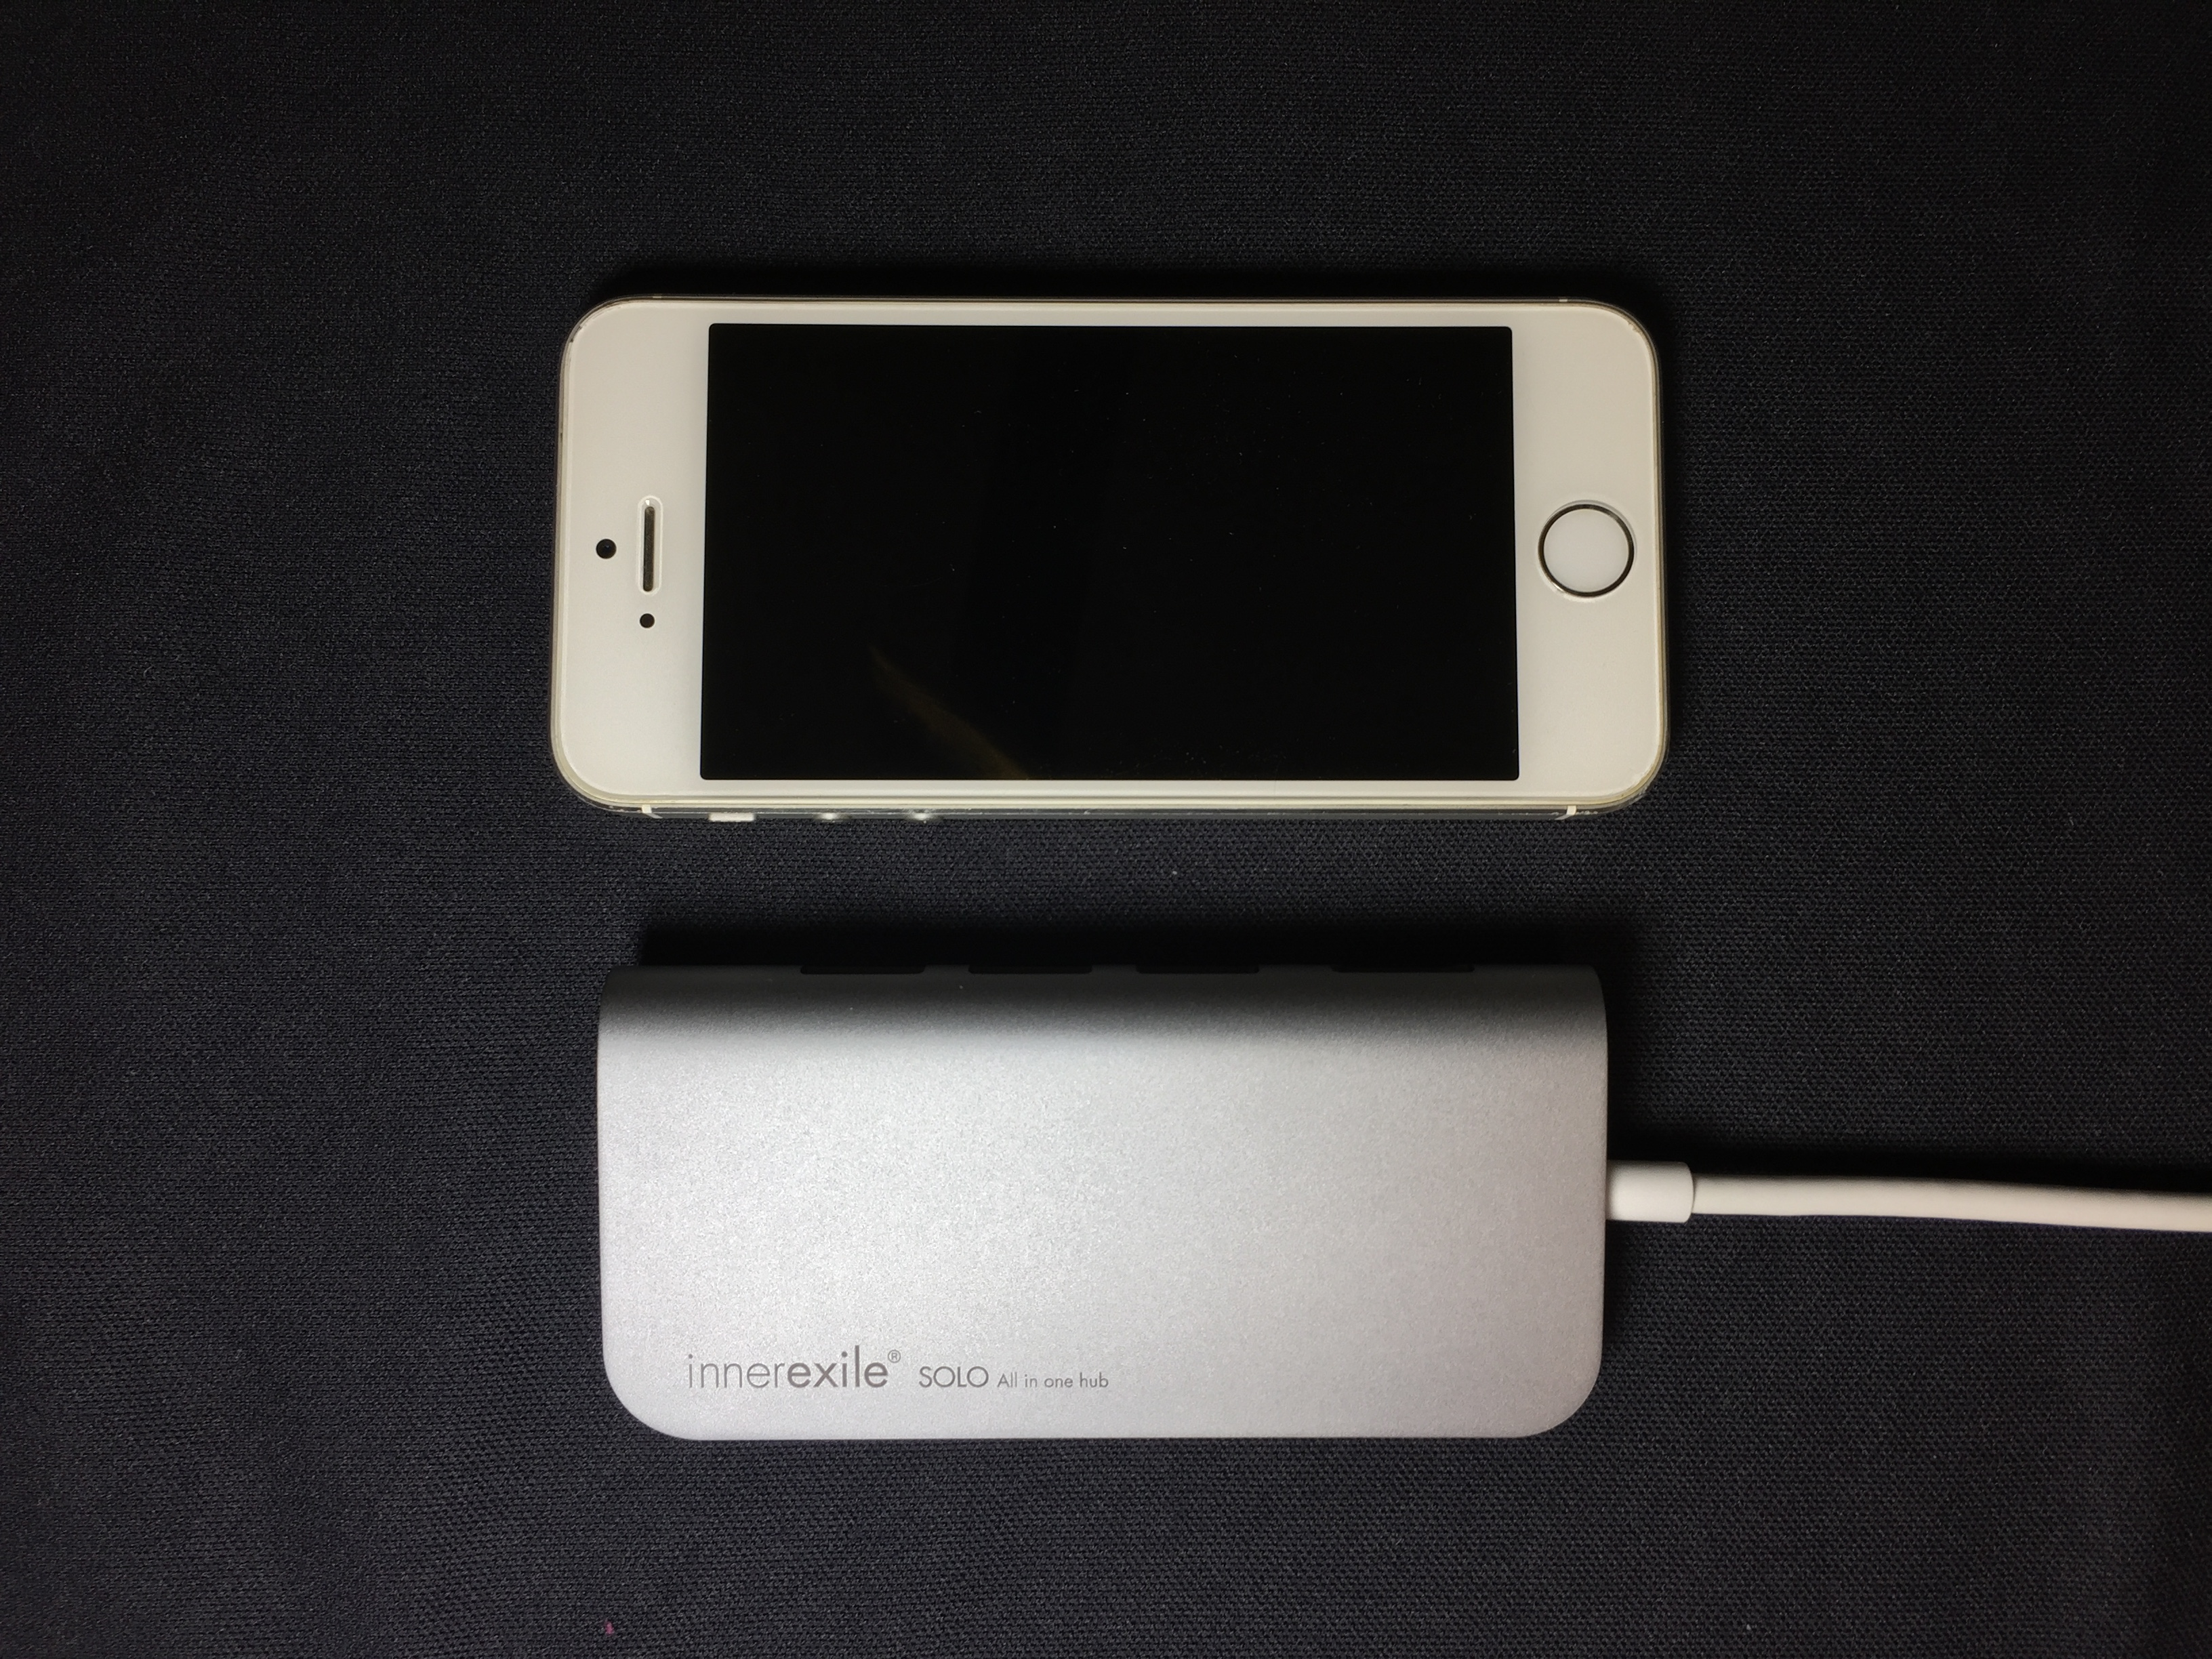 innerexile SOLO vs iPhone 5s